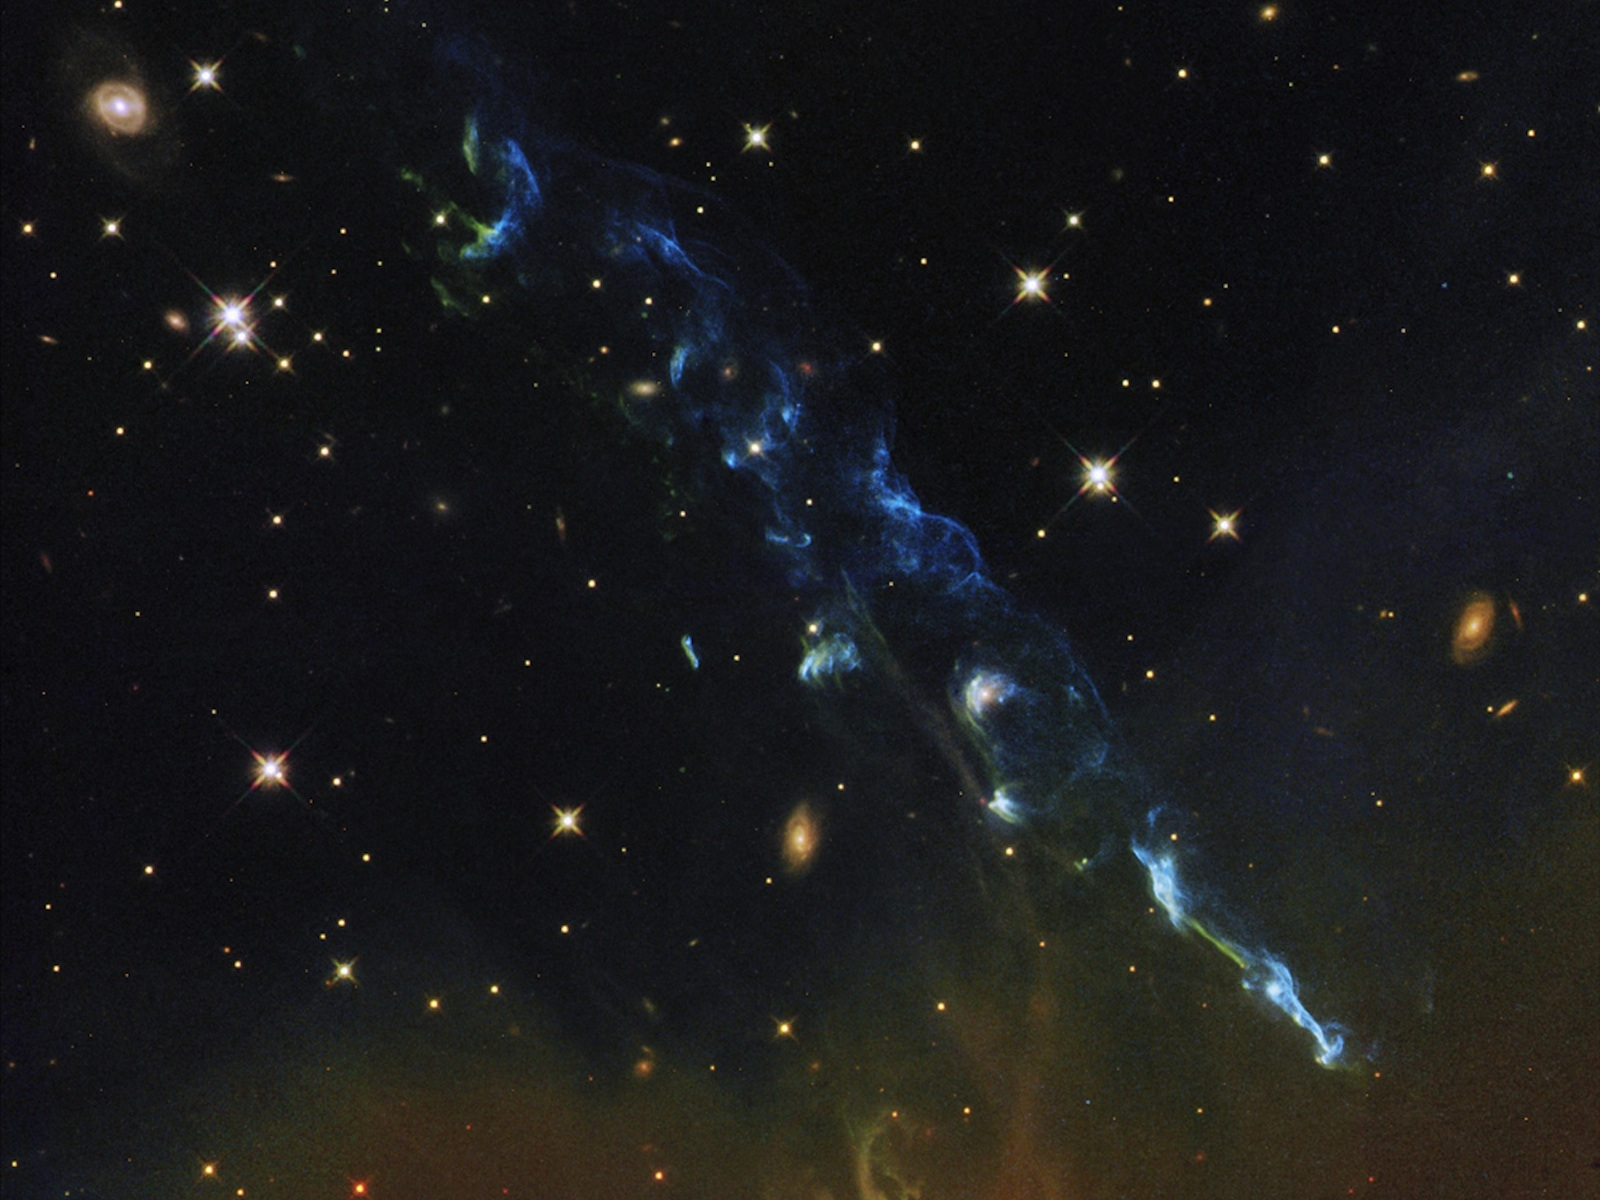 NASA's Hubble Views a Cosmic Skyrocket